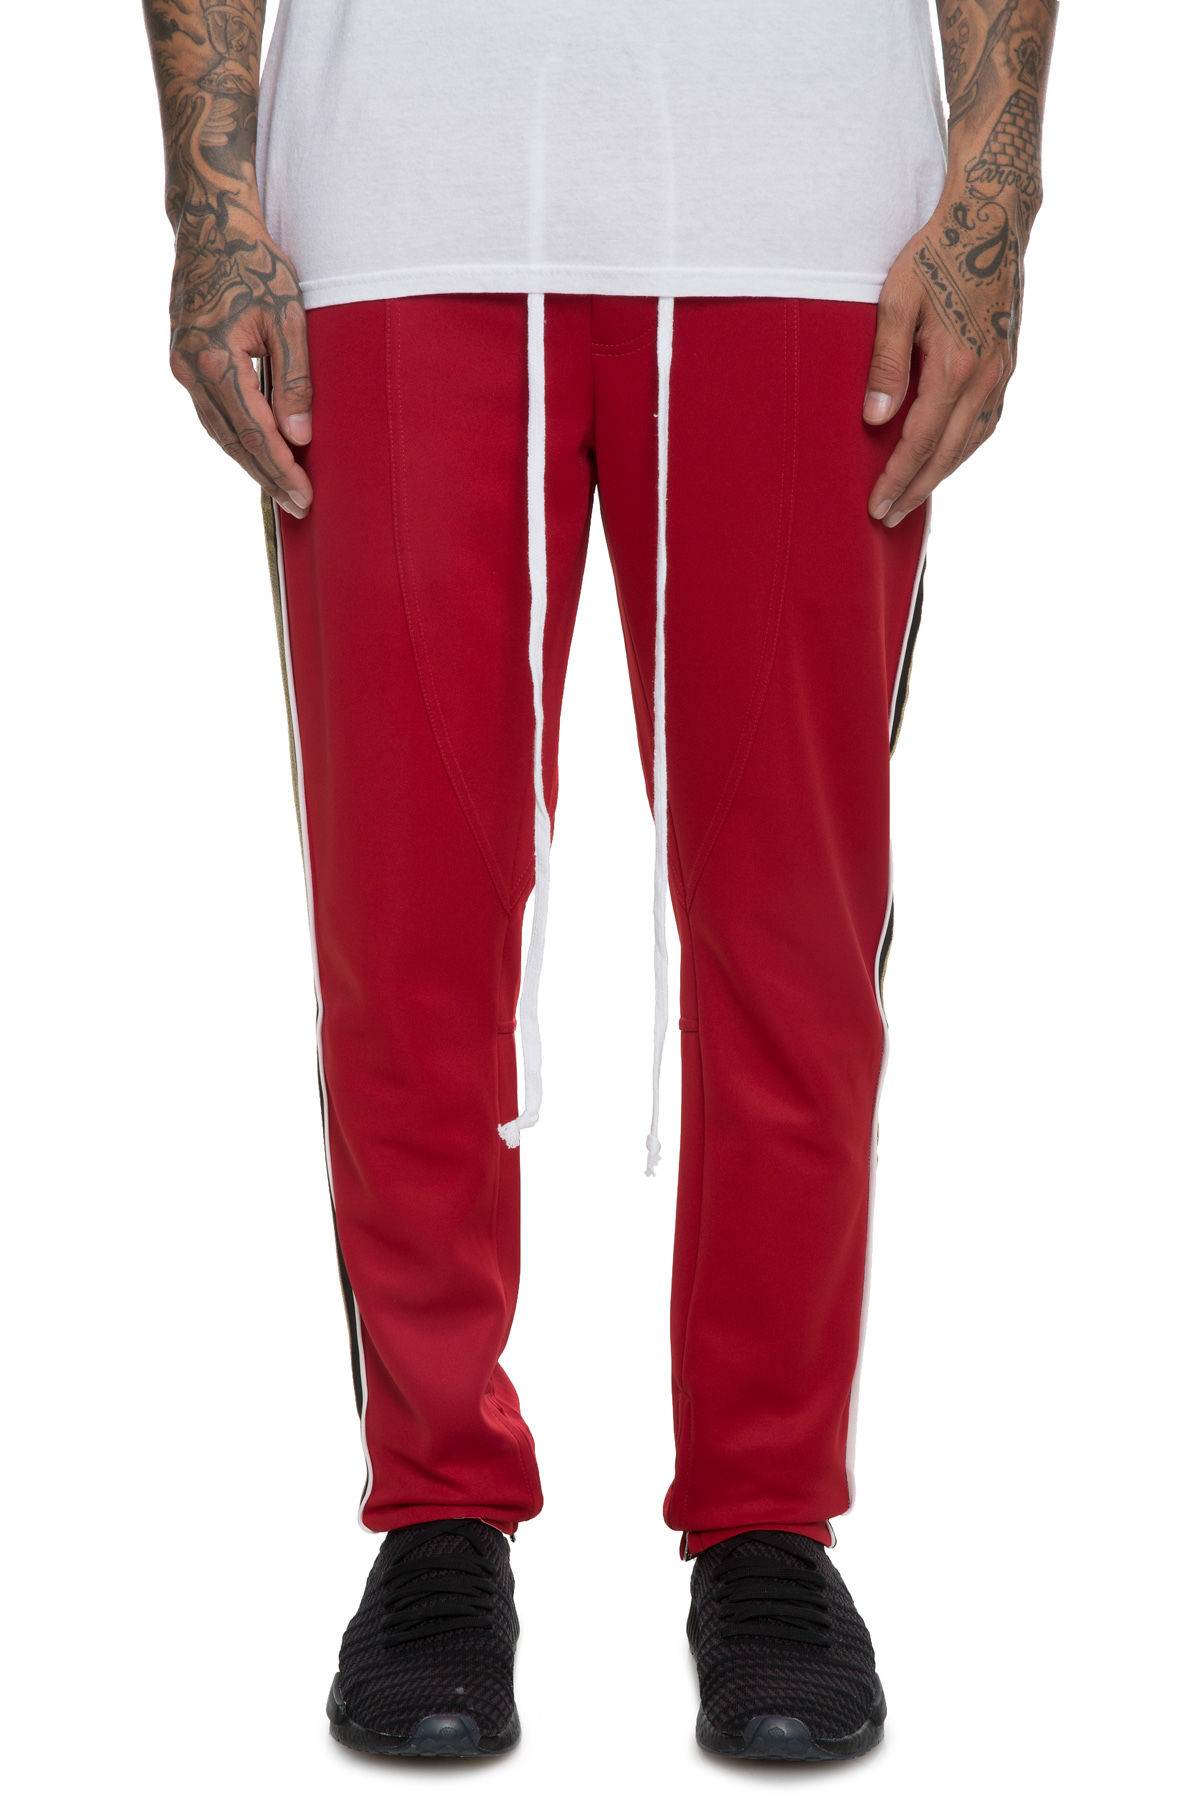 Image of The Jenner Track Pant in Red and Gold